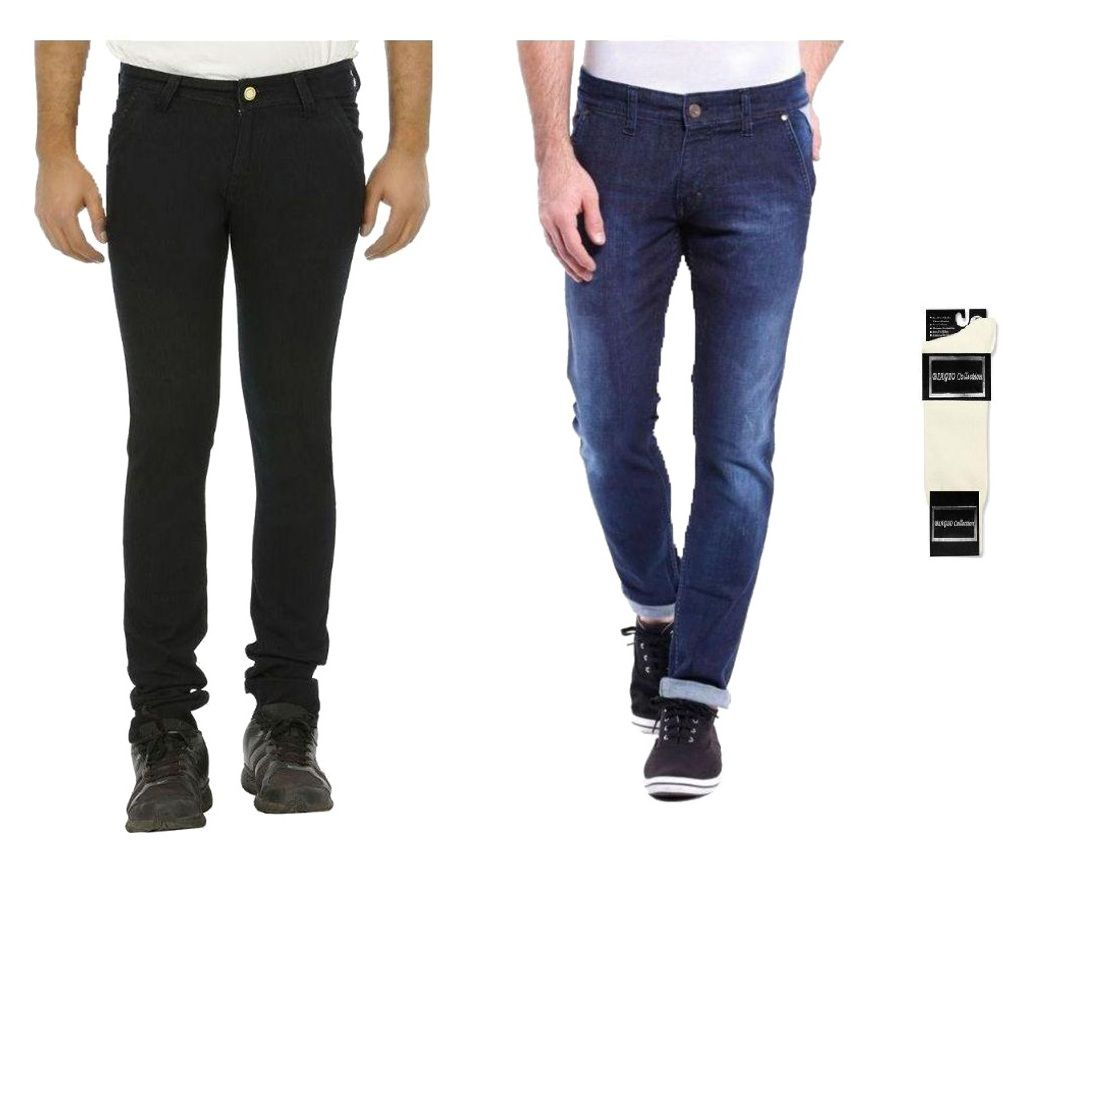 Urbano Fashion Multicolored Slim Fit Combo Of 2 Jeans With Free 1 Pair Of White Socks